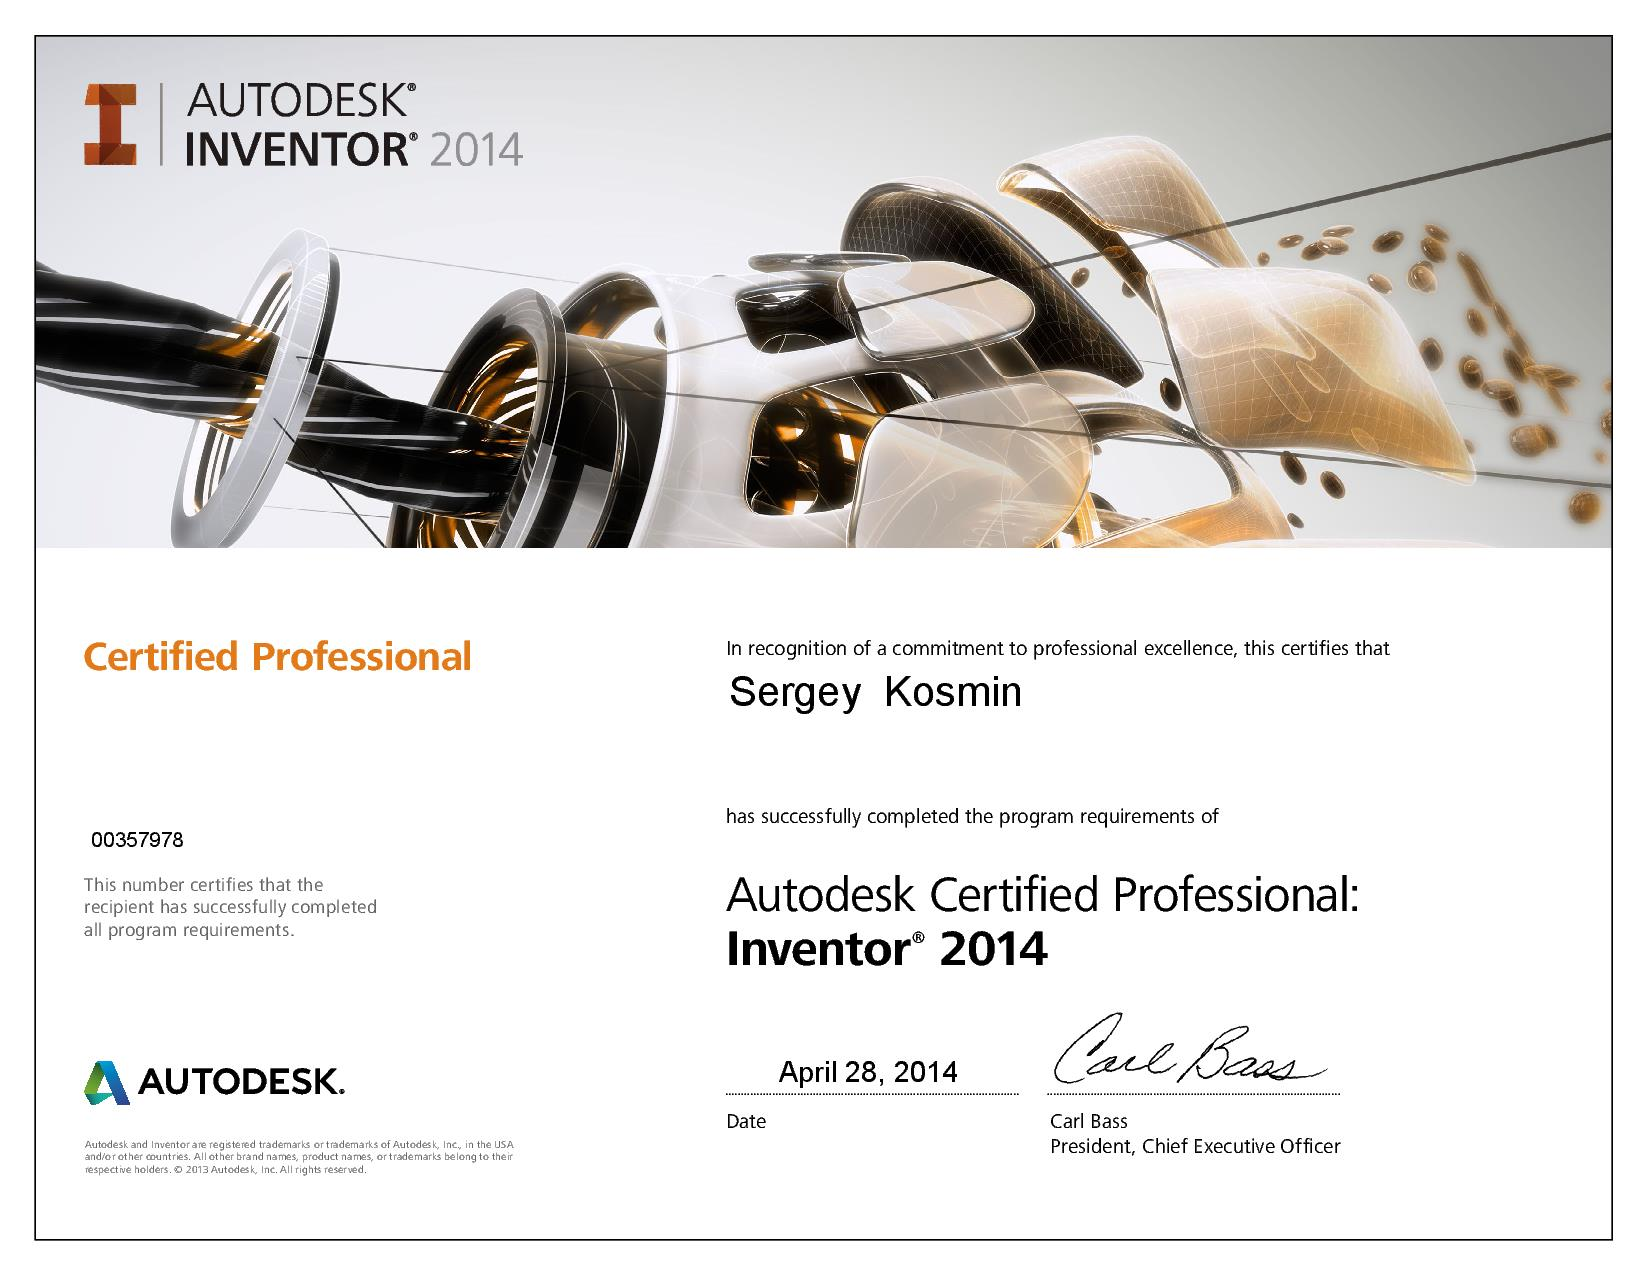 Inventor_2014_Certified_Professional.jpg